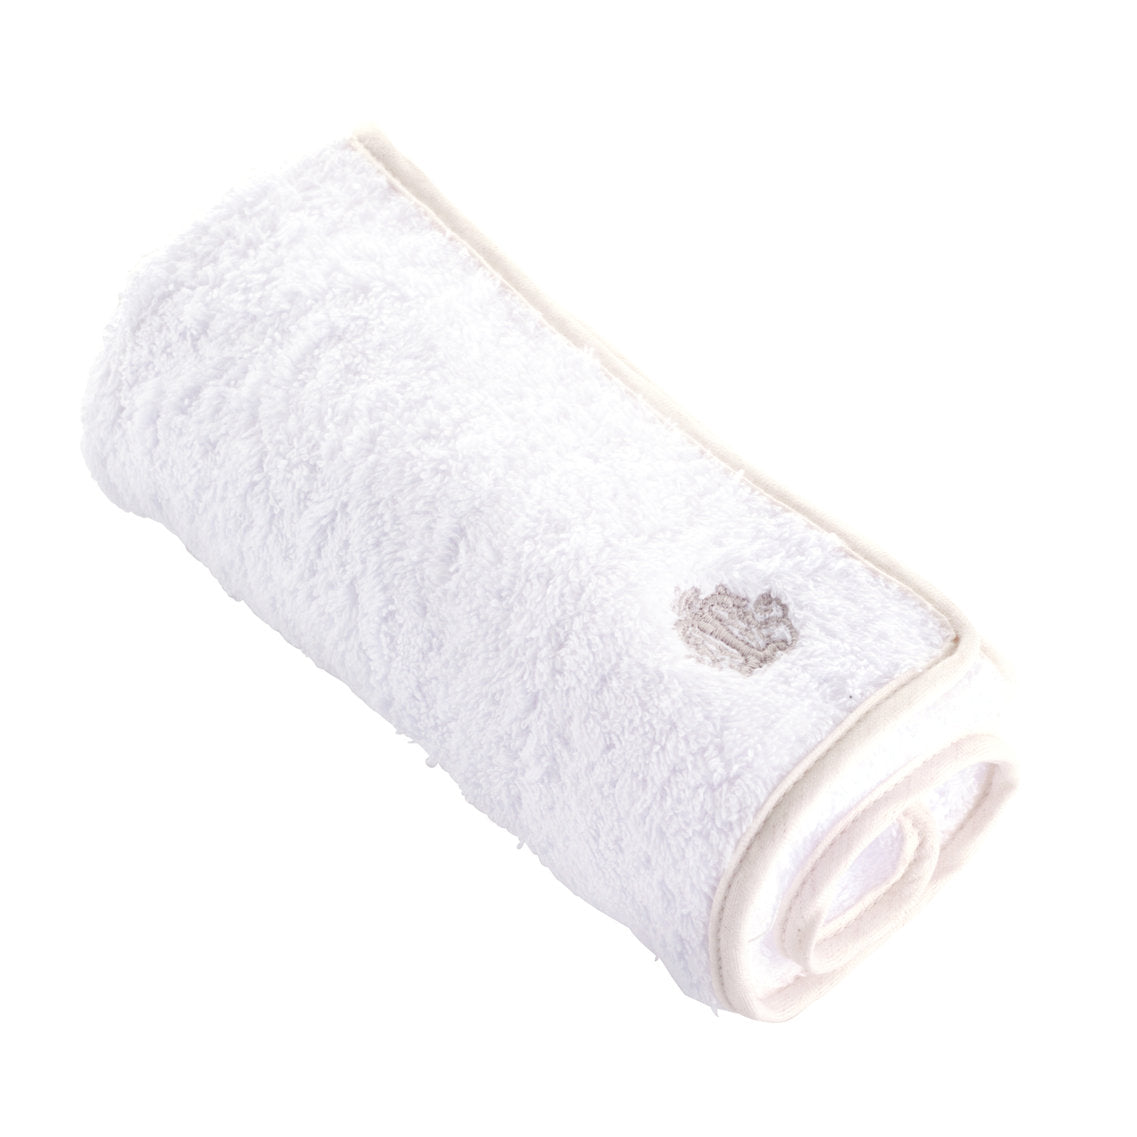 Theophile & Patachou Towel For Changing Mat - Sand